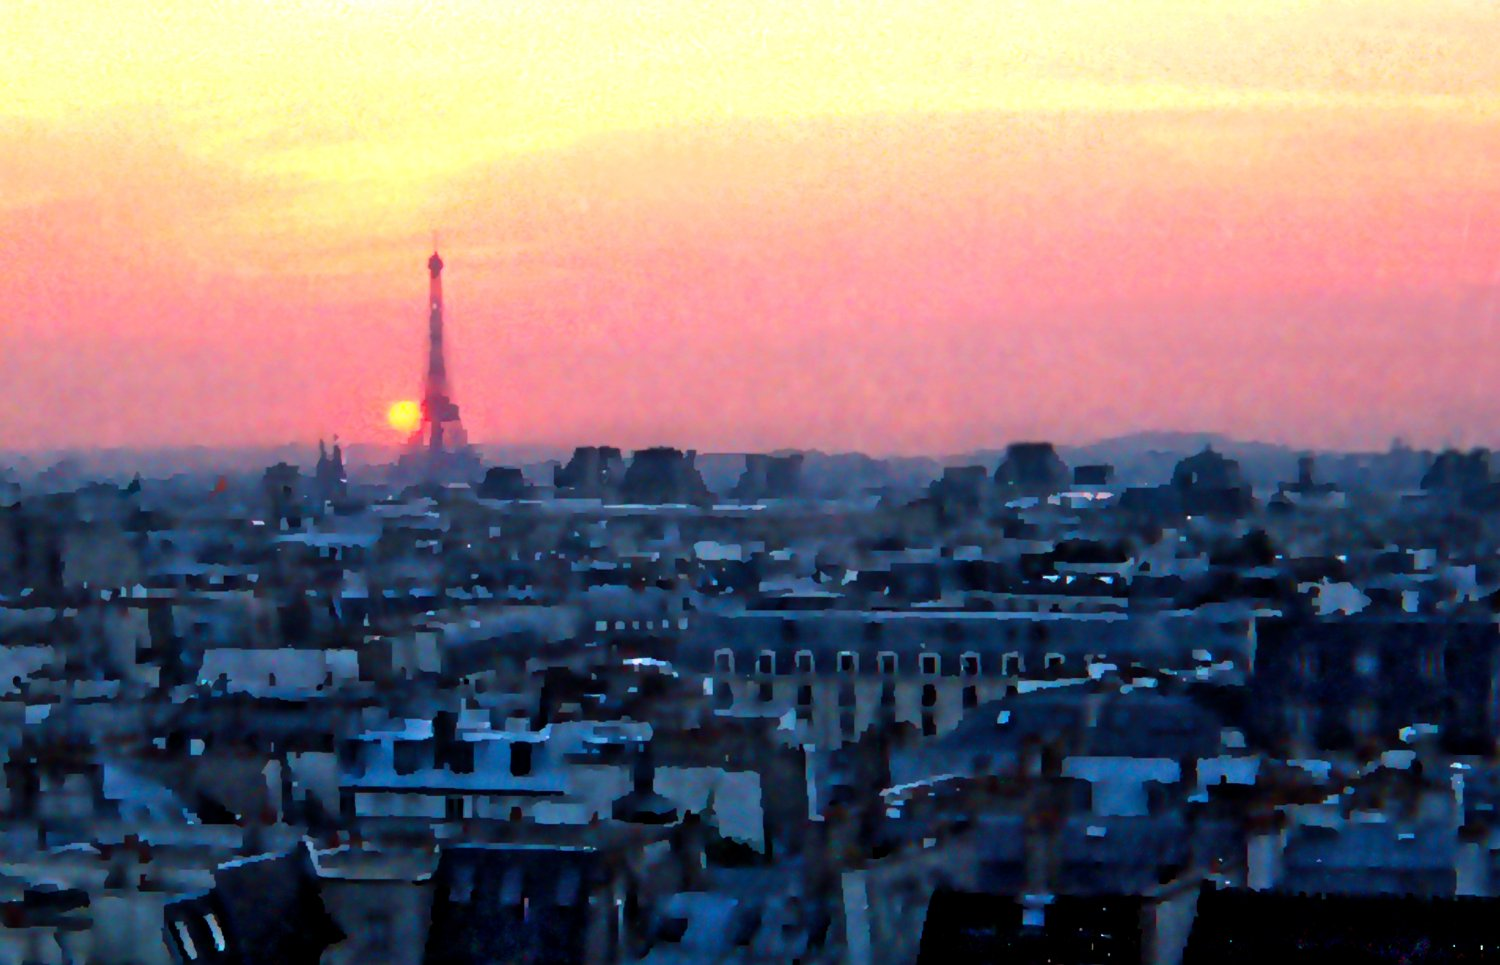 - Goodnight, Paris. A view across the city as the sun sets. - Paris, eiffel tower - Tony Karp, design, art, photography, techno-impressionist, techno-impressionism, aerial photography , drone , drones , dji , mavic pro , video , 3D printing - Books -